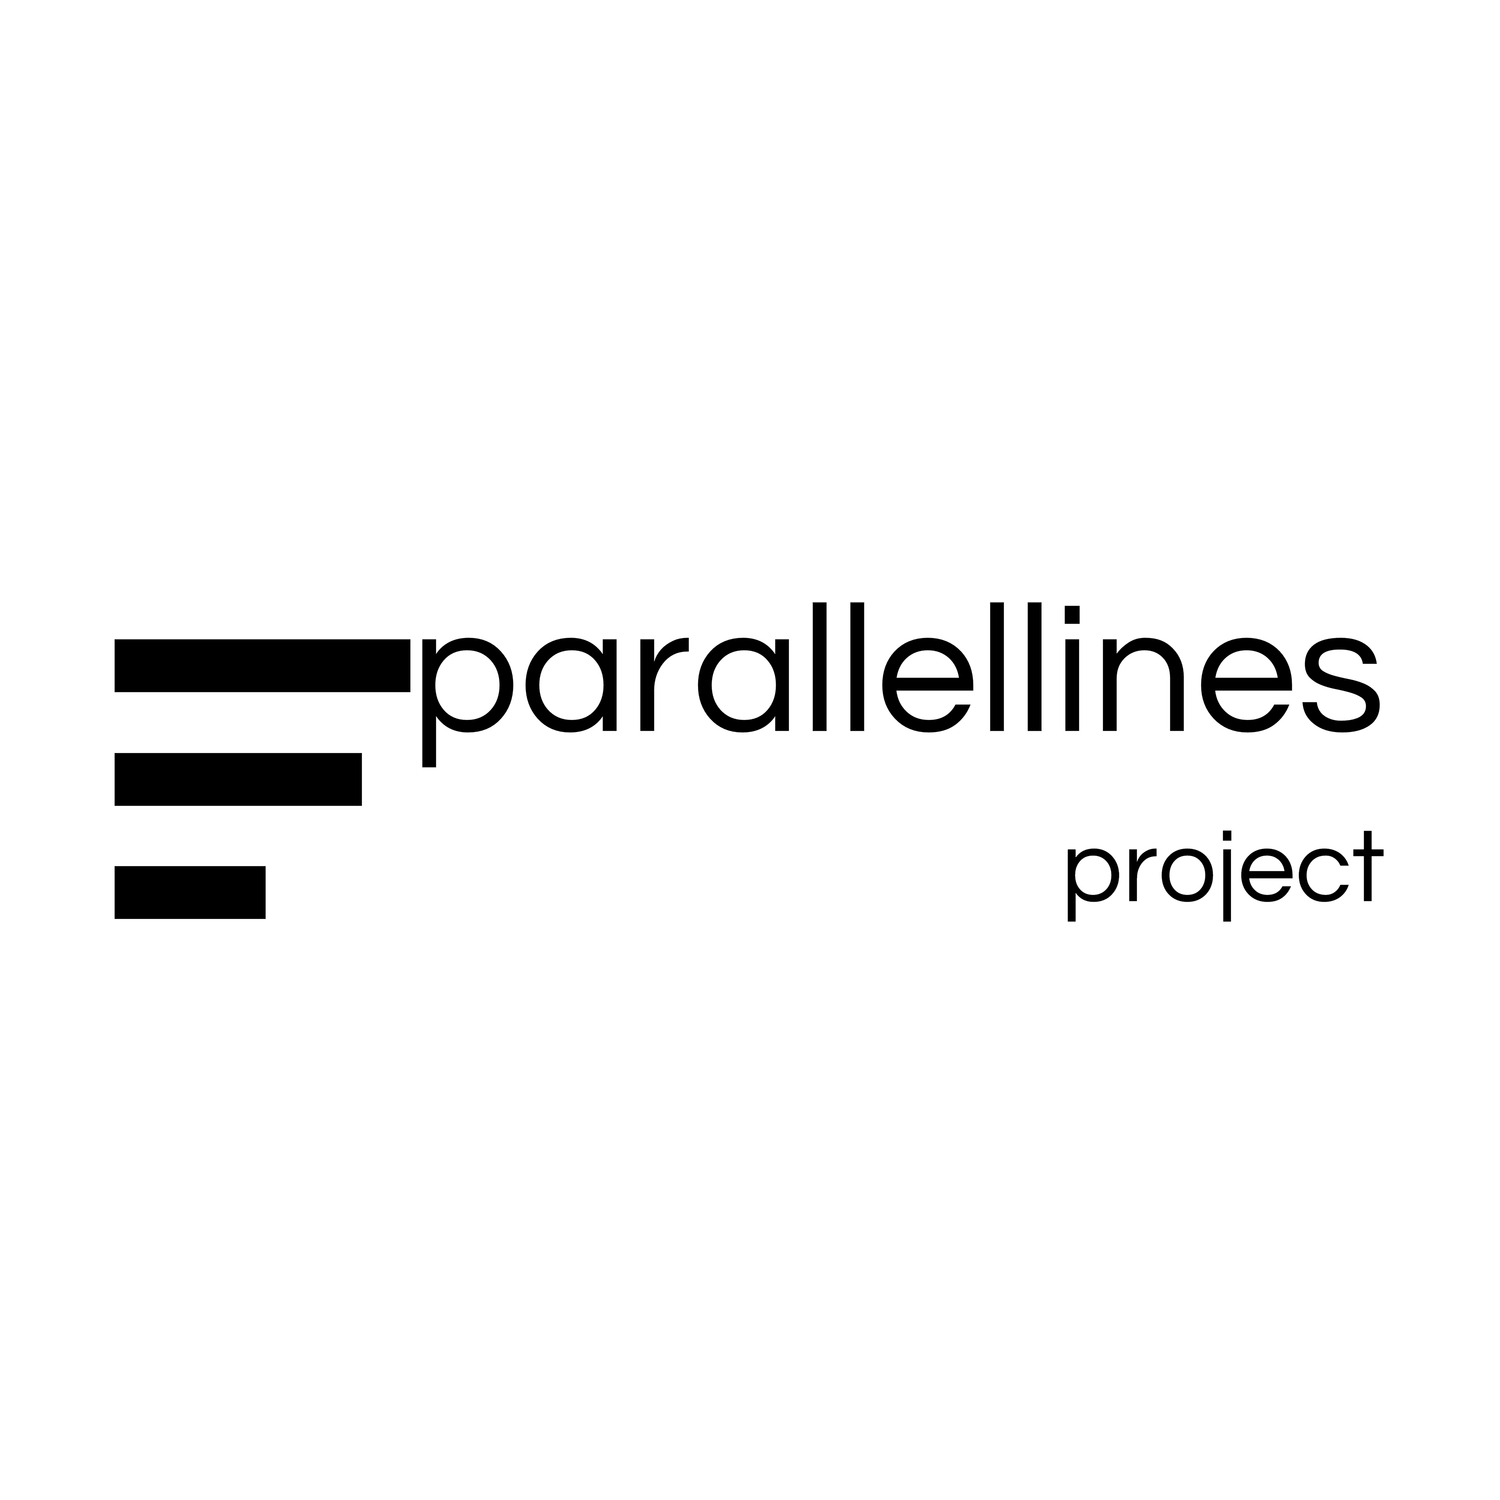 Parallel Lines Project - Mark Moldowan